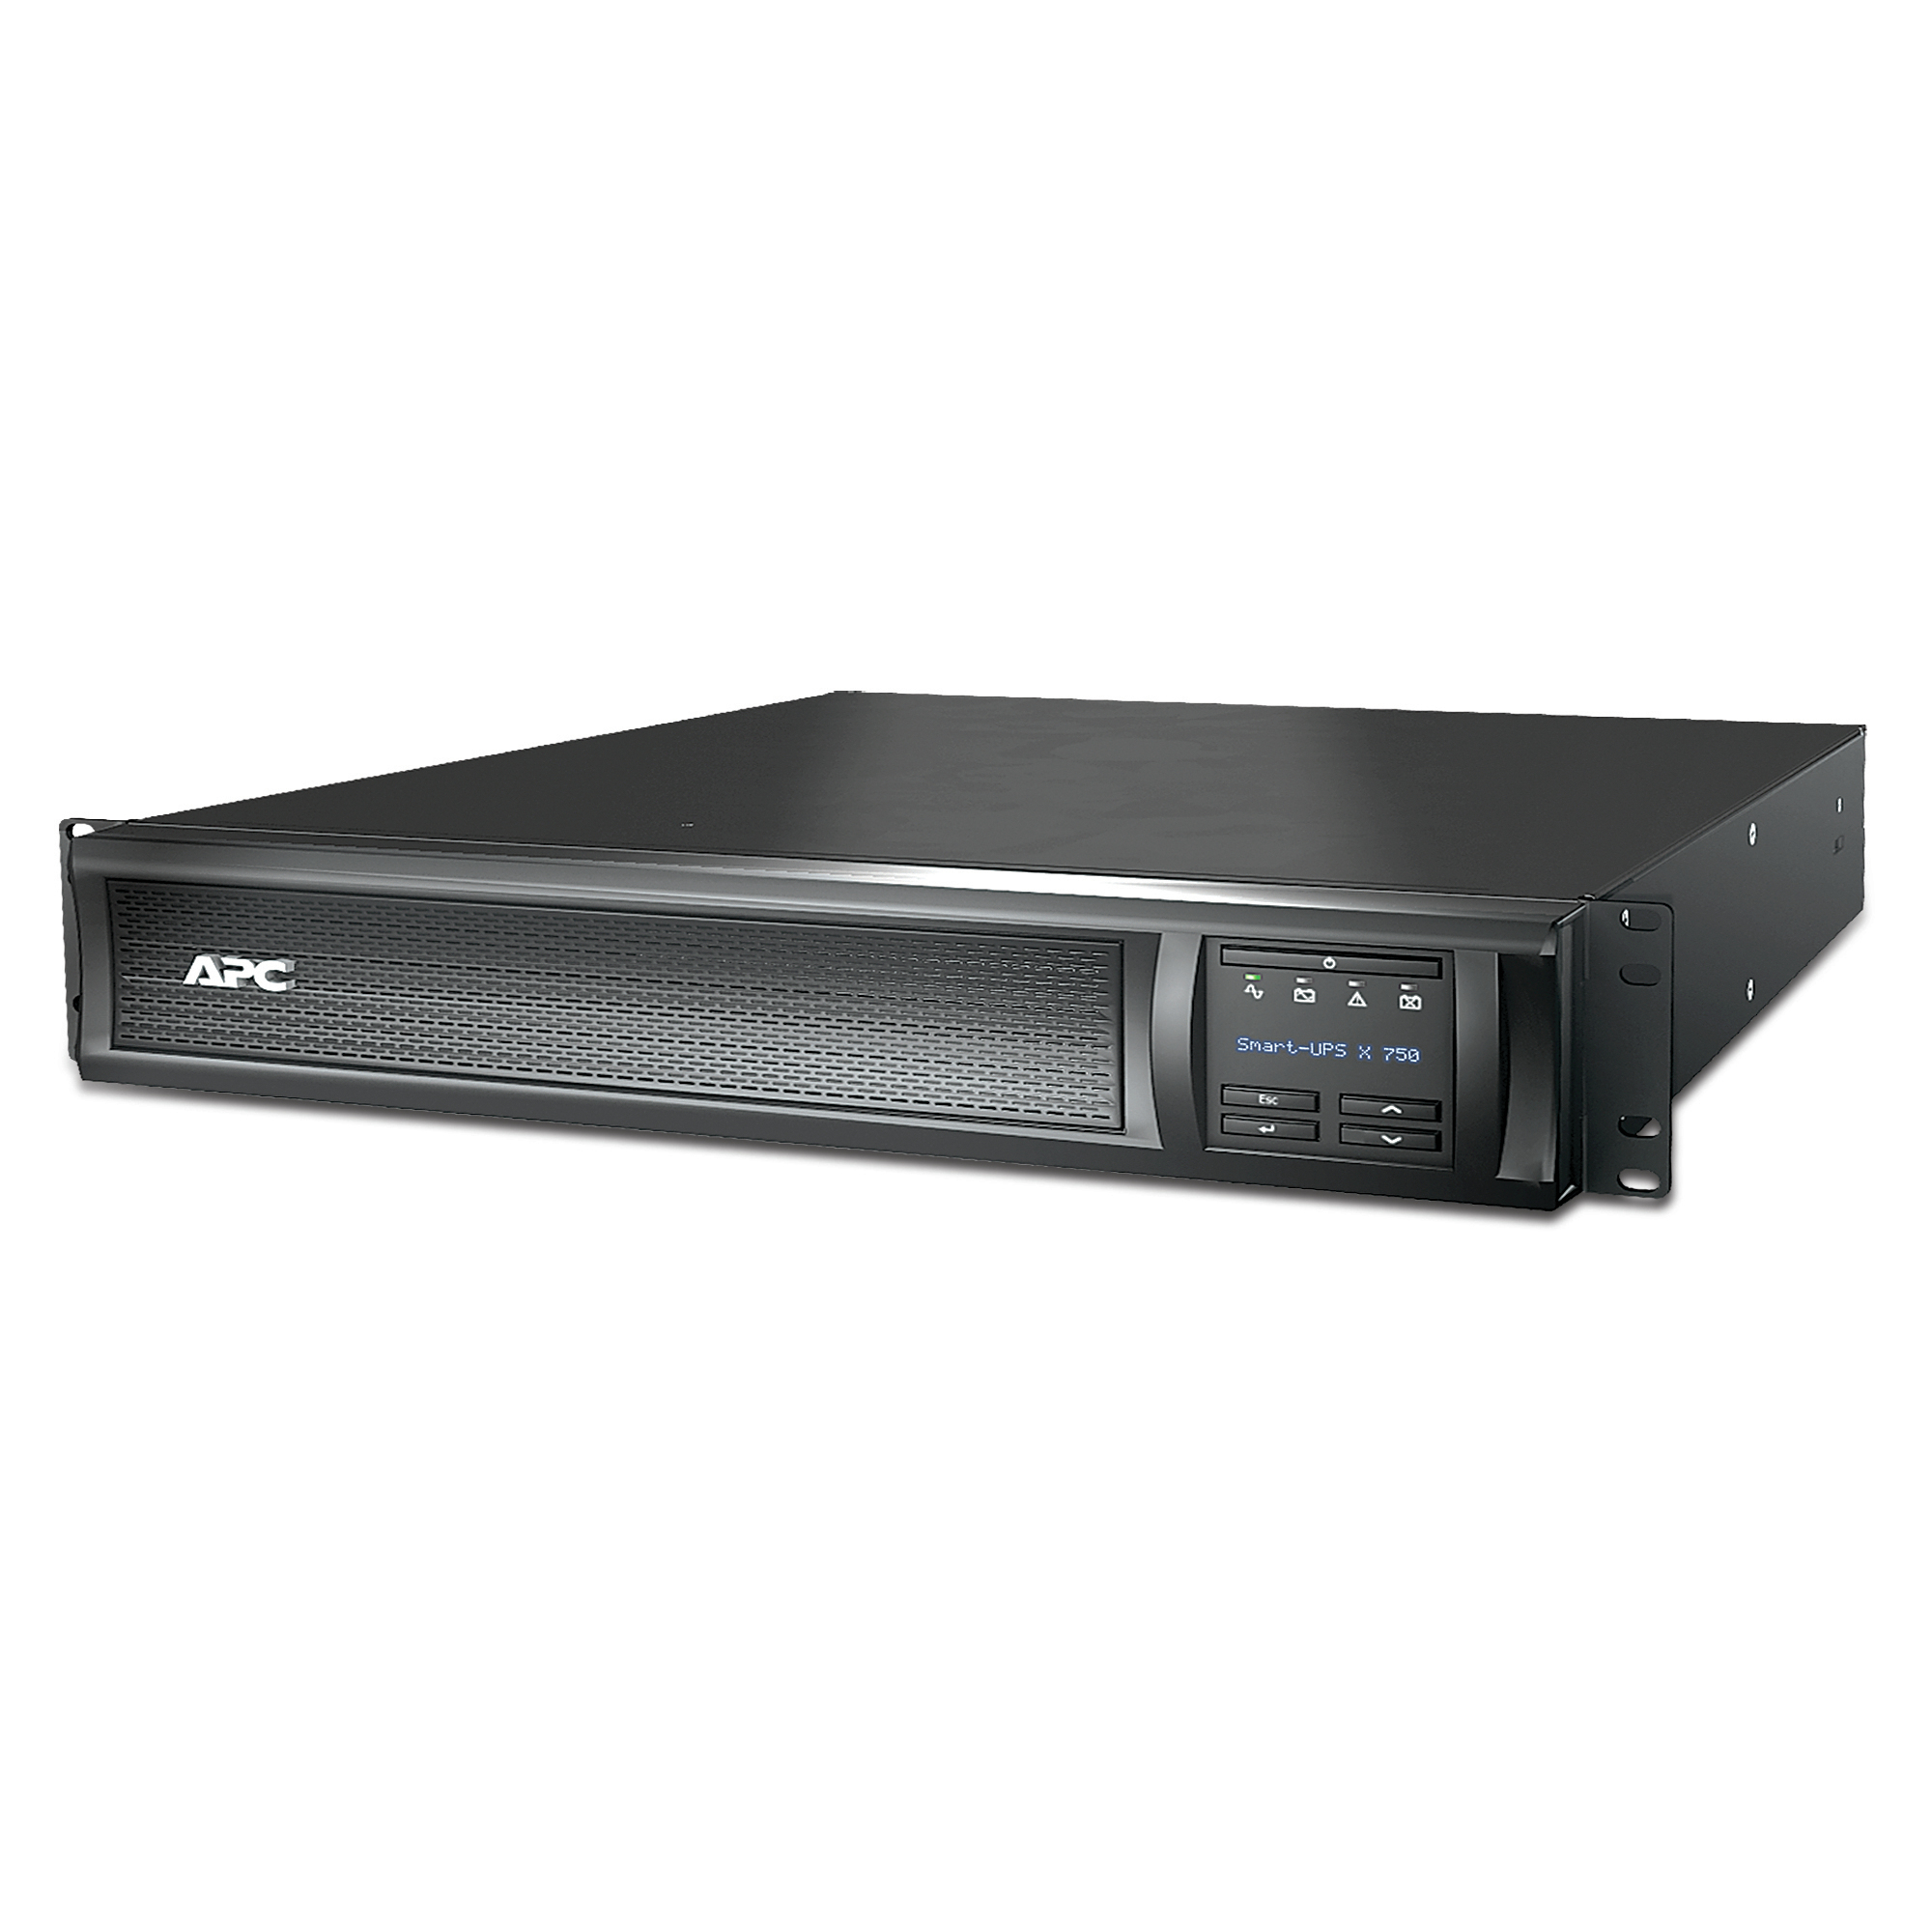 APC Smart-UPS uninterruptible power supply (UPS) Line-Interactive 750 VA 600 W 8 AC outlet(s)